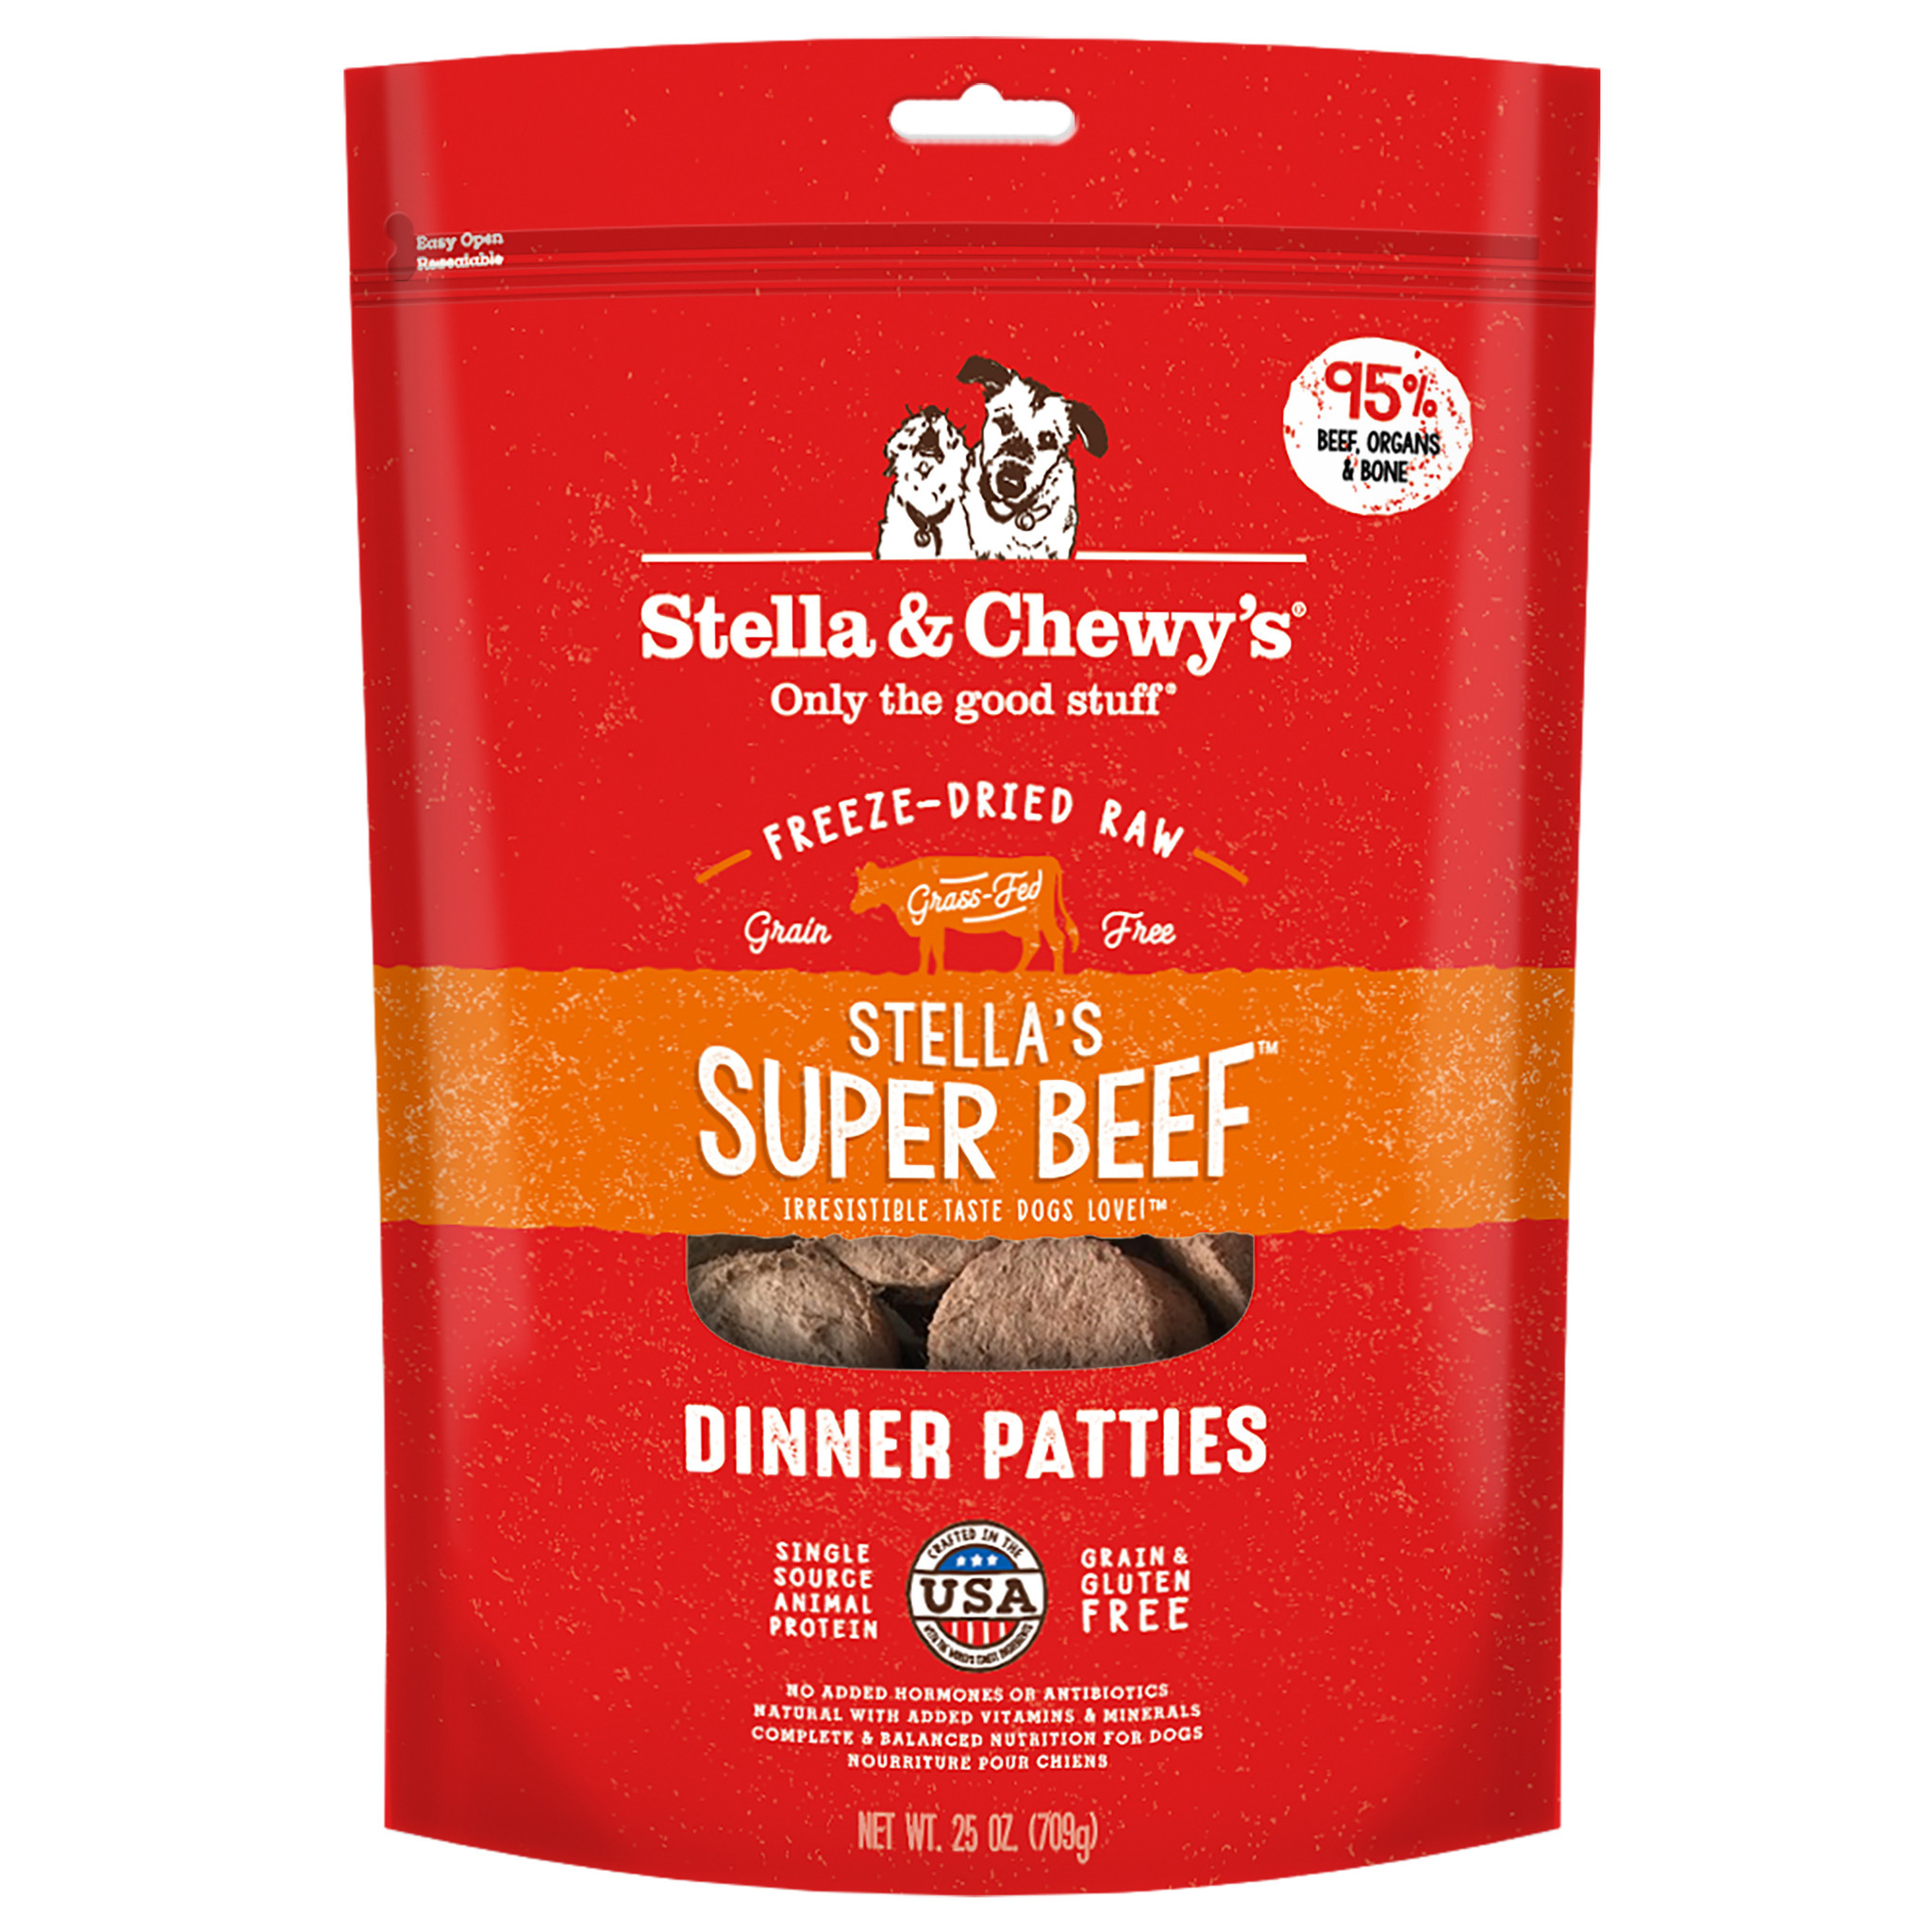 Stella & Chewys Stella & Chewys Super Beef Freeze Dried Dinner Patties